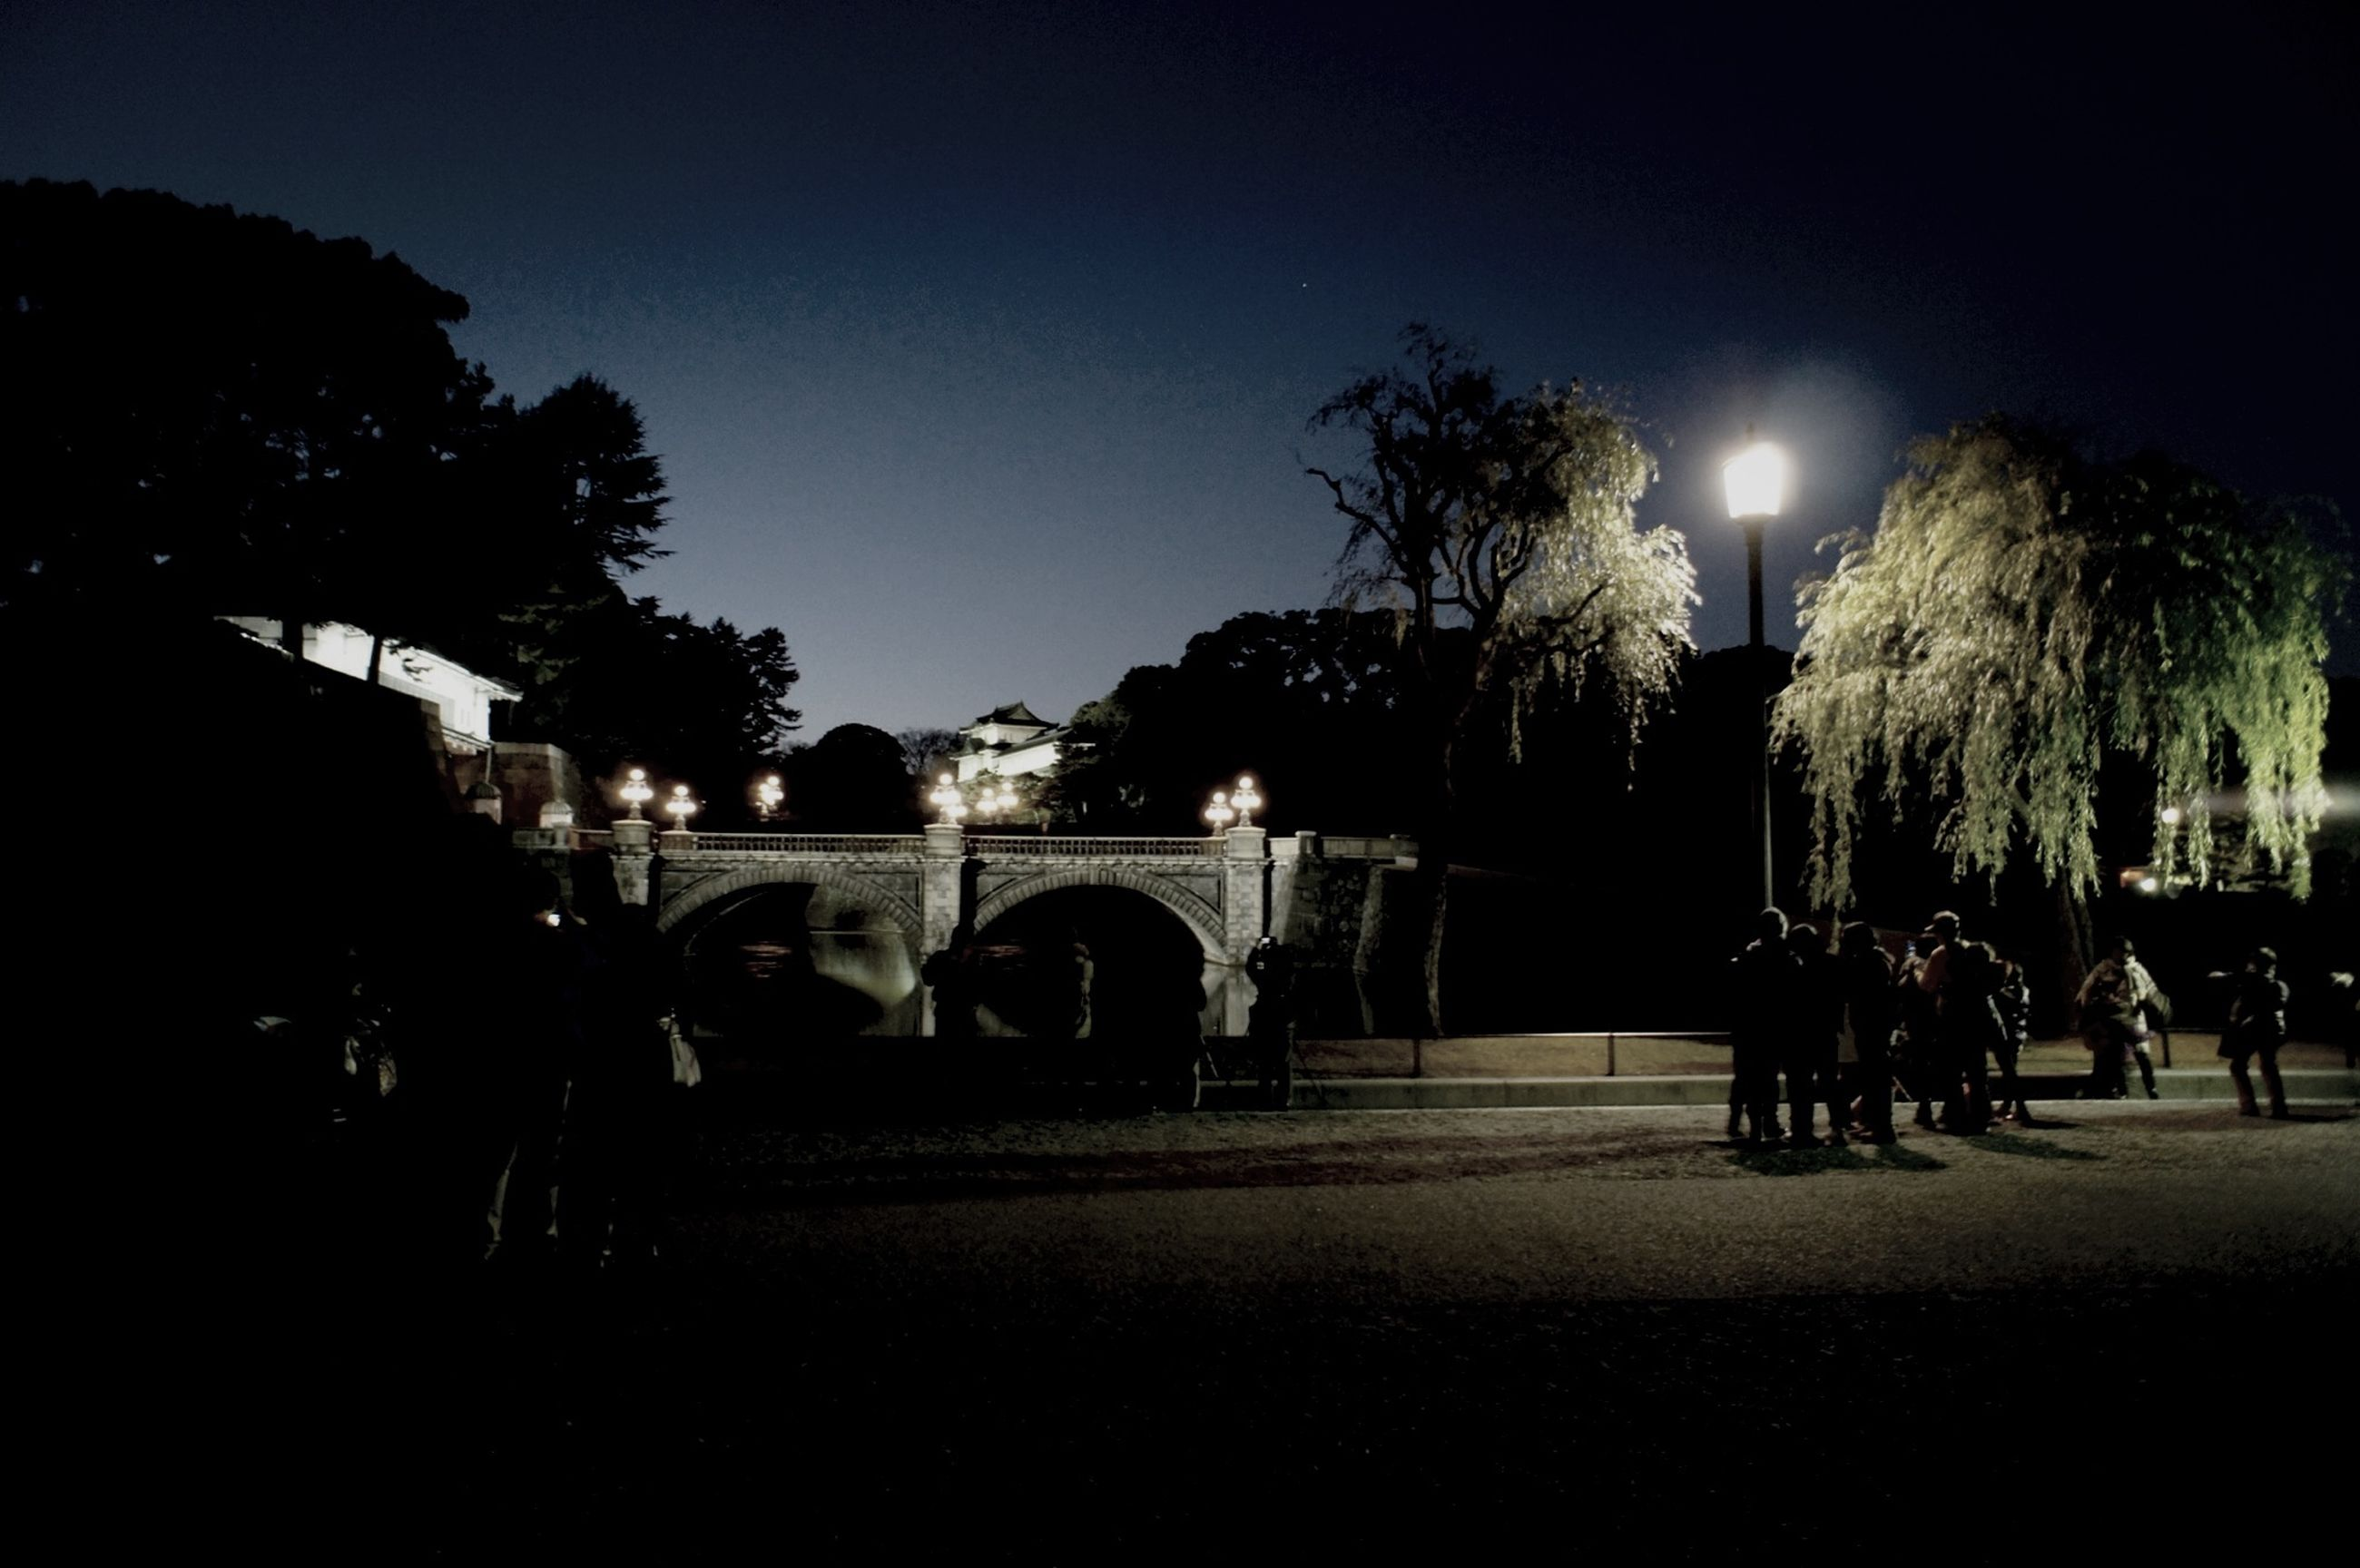 tree, night, illuminated, street light, large group of people, clear sky, sky, men, lighting equipment, silhouette, park - man made space, built structure, outdoors, architecture, leisure activity, building exterior, street, person, lifestyles